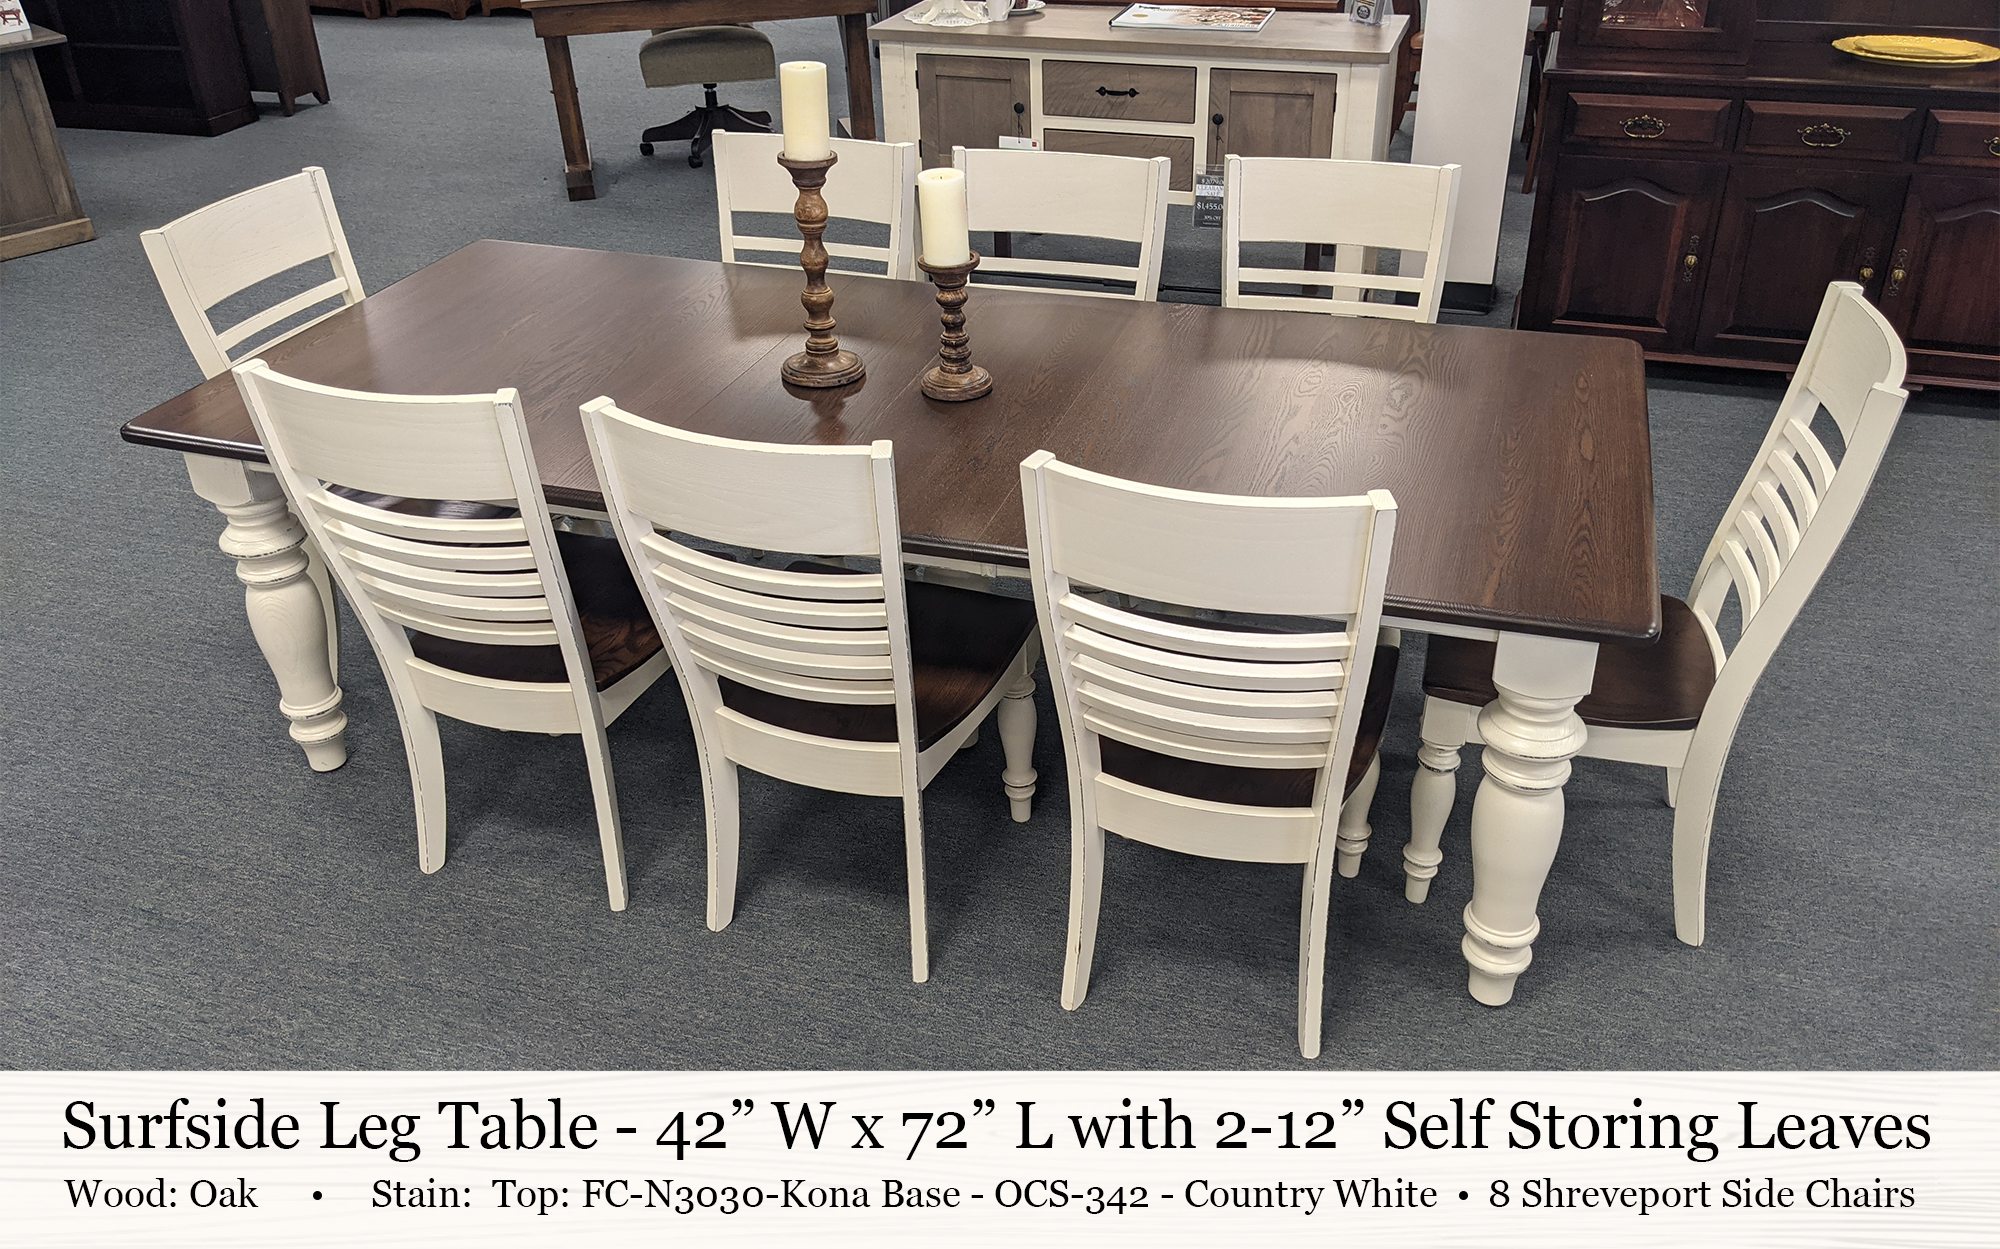 Surfside Leg Table 42 X 72 With 2 12in Leaves Sherwood Side Chairs Oak Two Tone (country White & Kona)